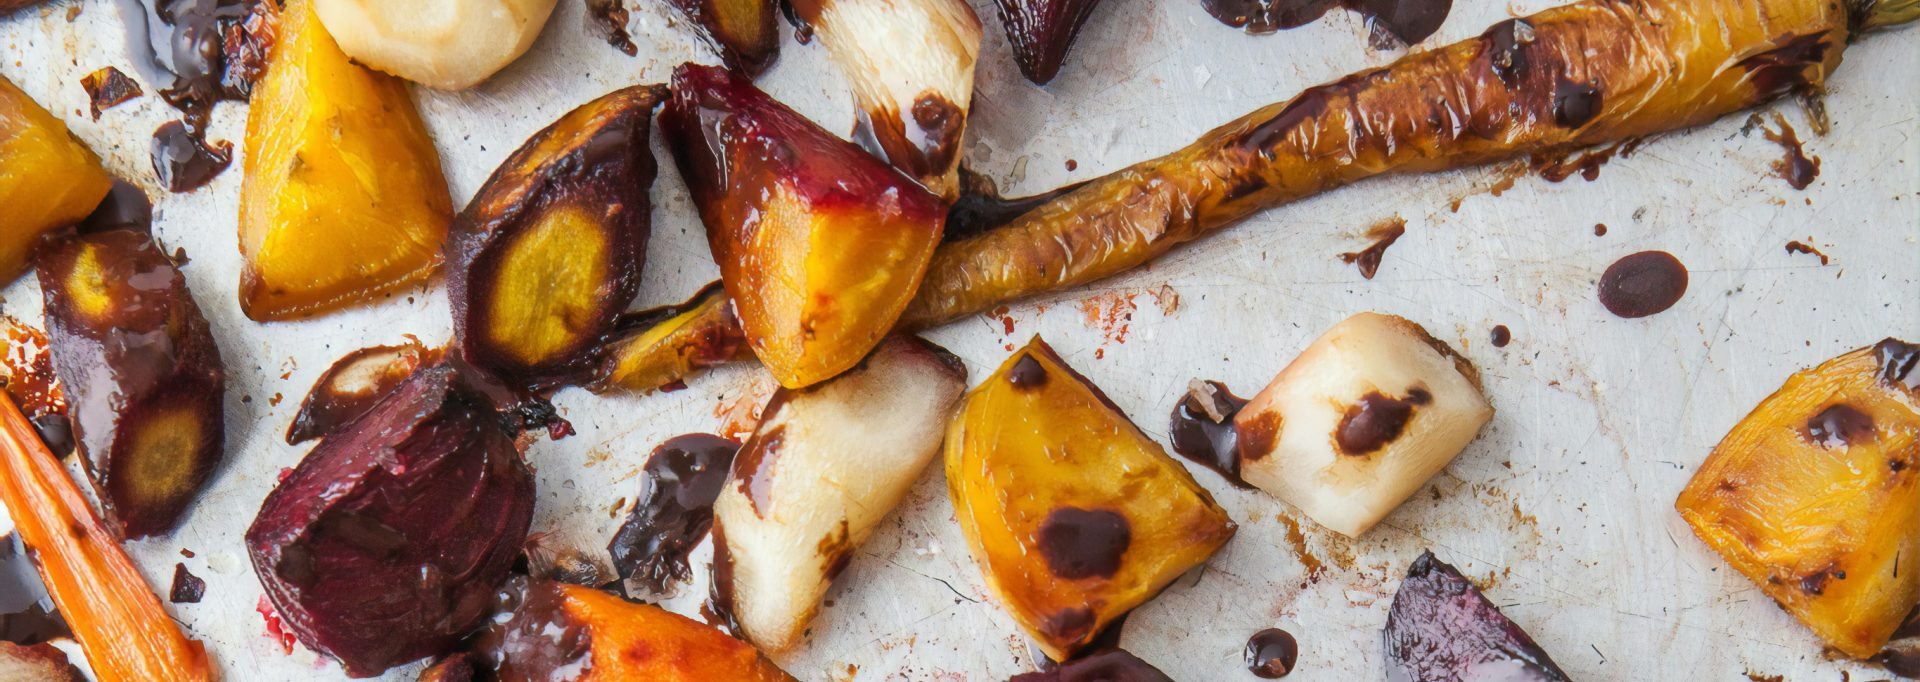 How To Roast Vegetables Feature